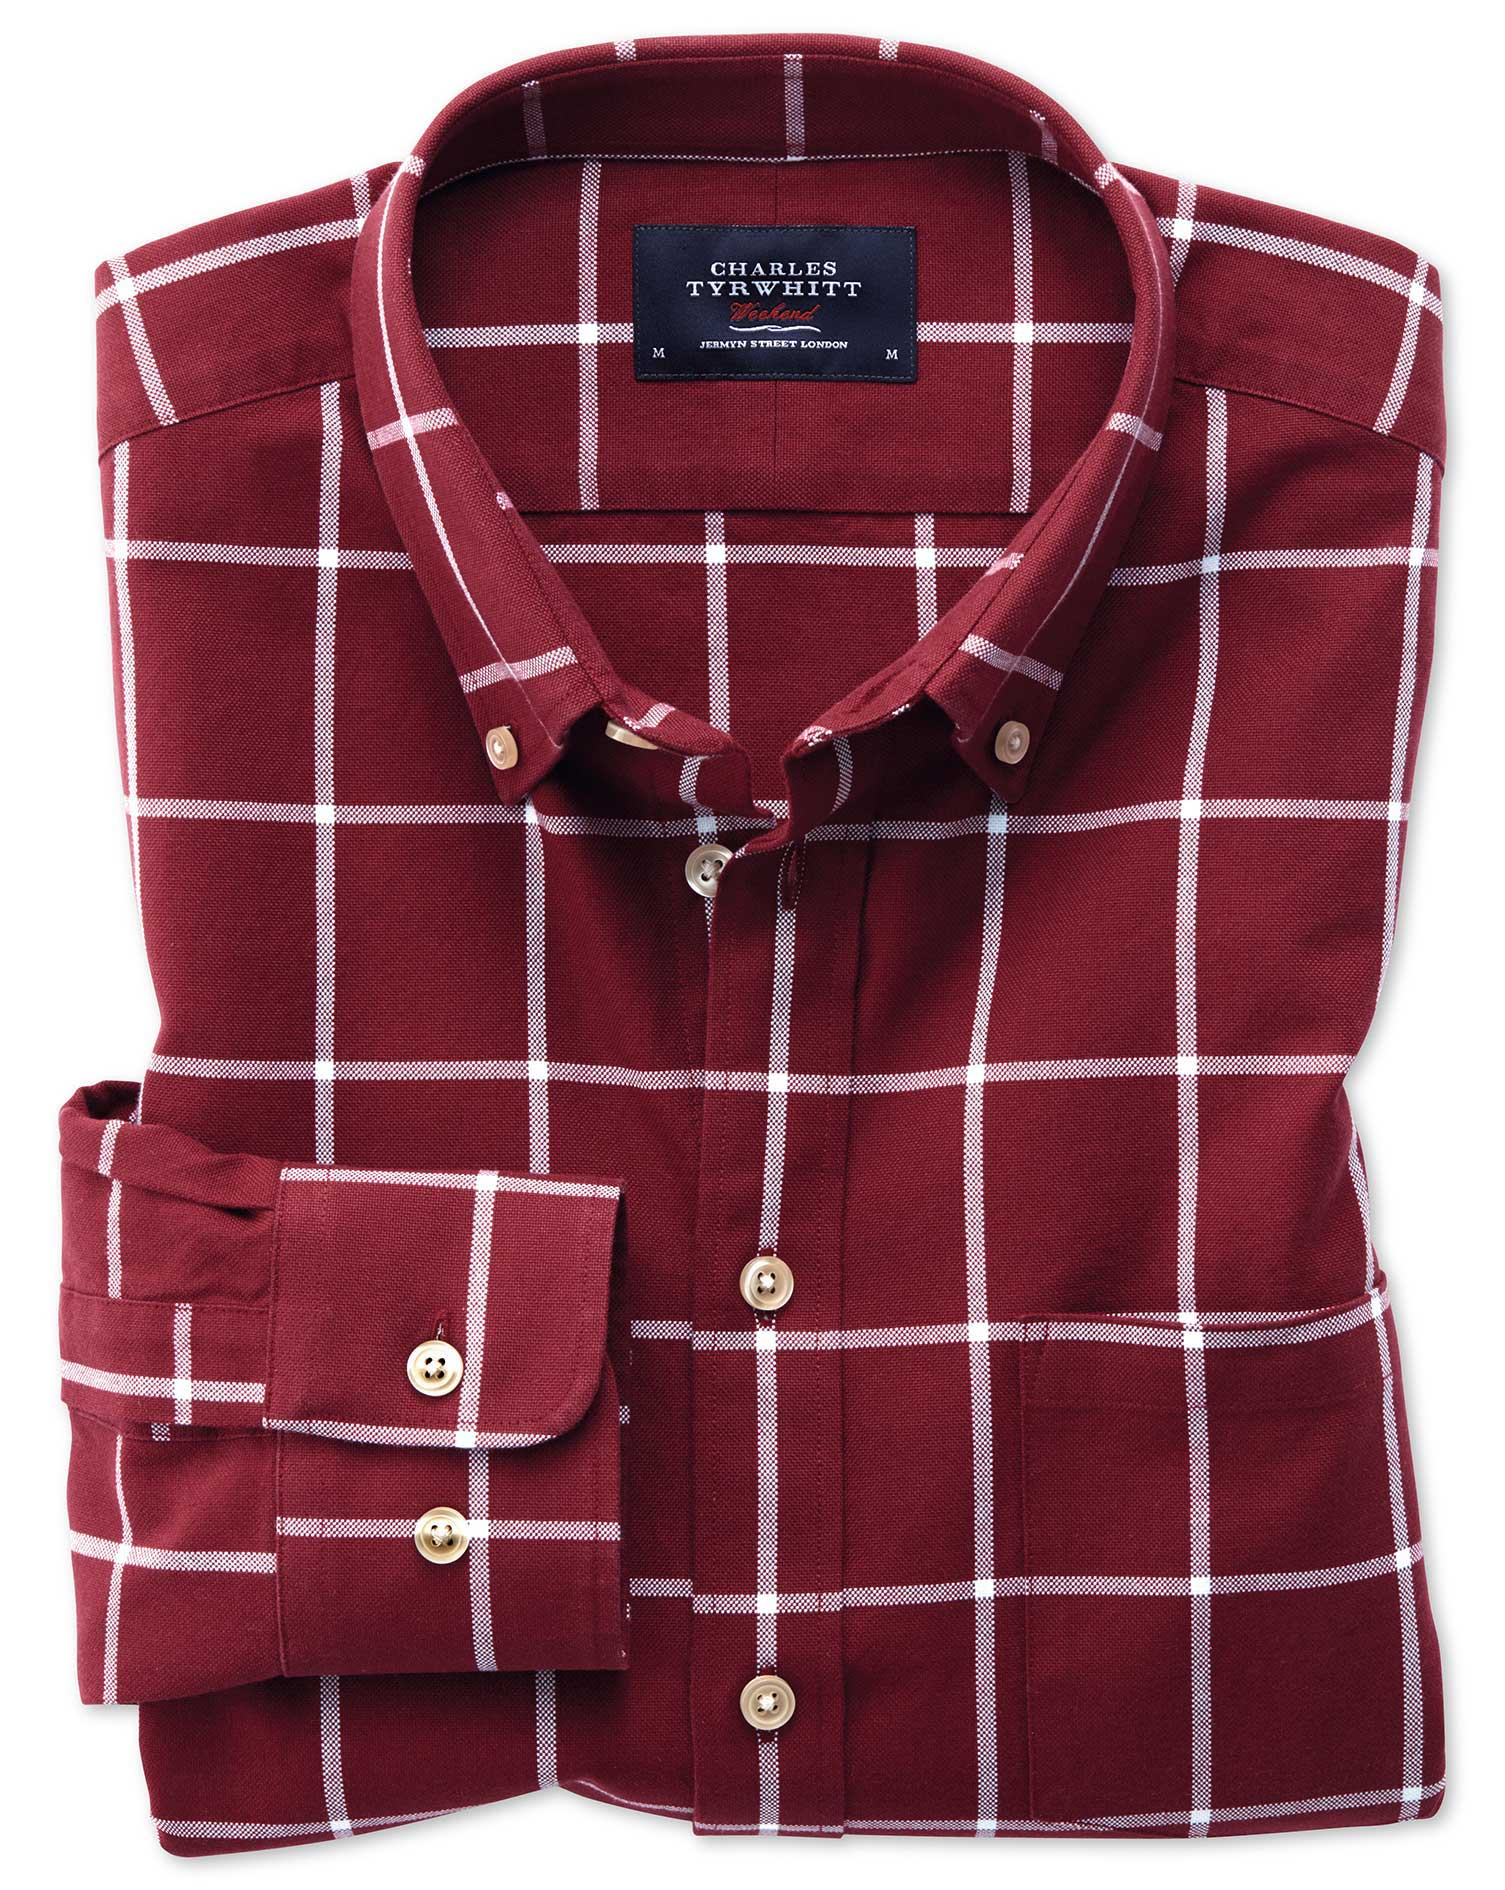 Classic Fit Button-Down Washed Oxford Burgundy and White Check Cotton Shirt Single Cuff Size Medium